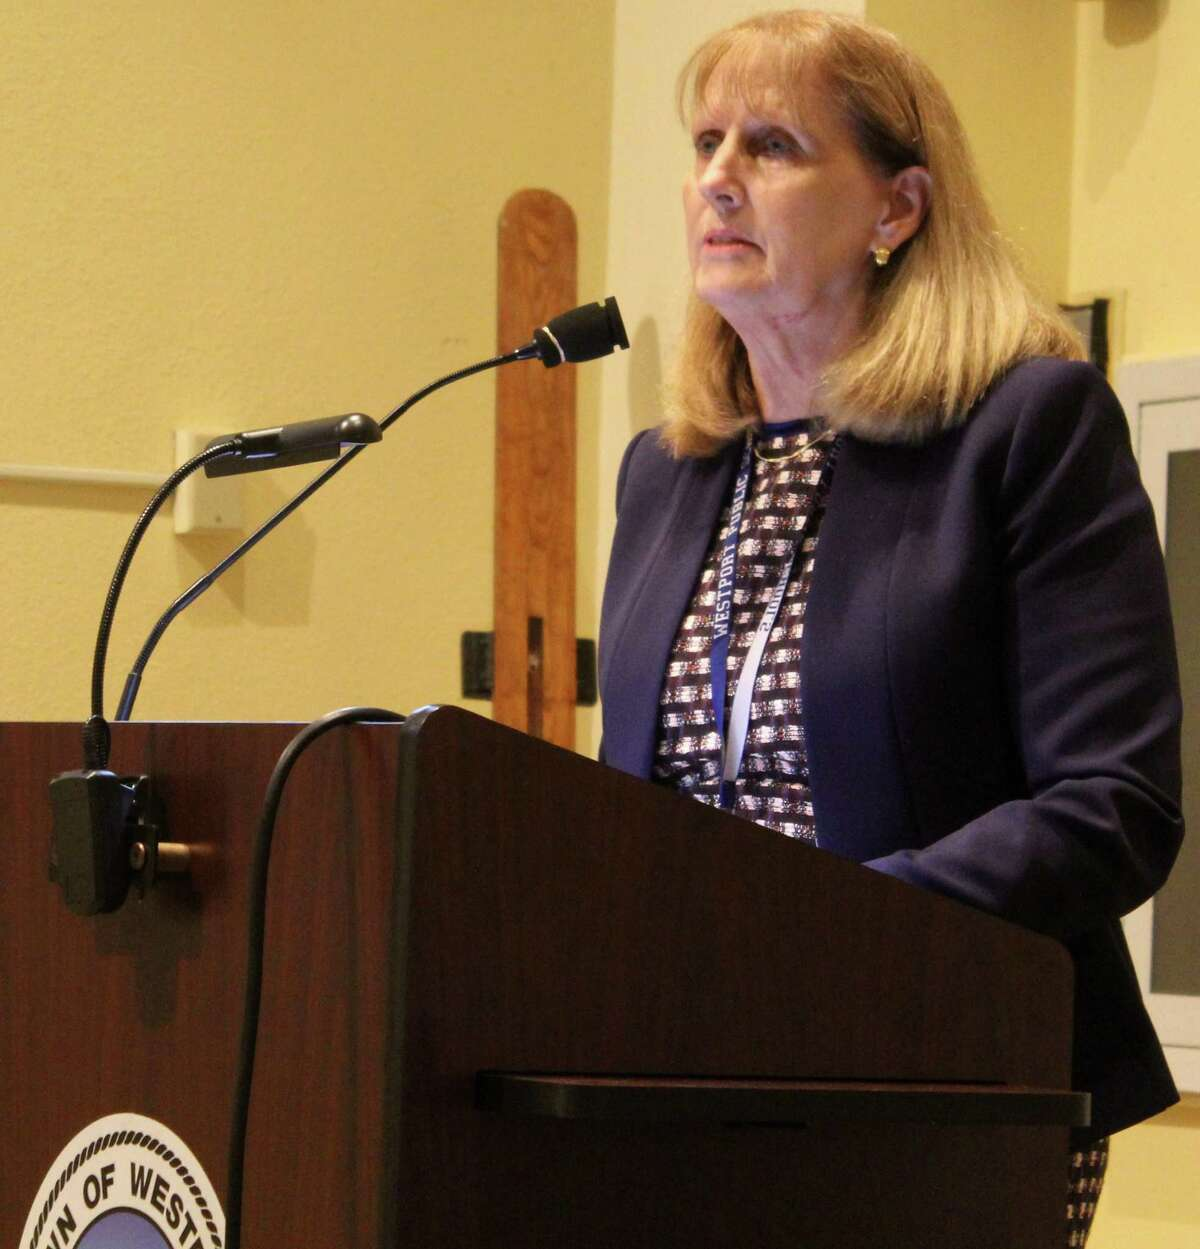 Superintendent Colleen Palmer spoke in support of an appropriation to fund two police officers to be housed in Westport's middle schools at the Oct. 2 Representative Town Meeting (RTM) meeting in Town Hall.